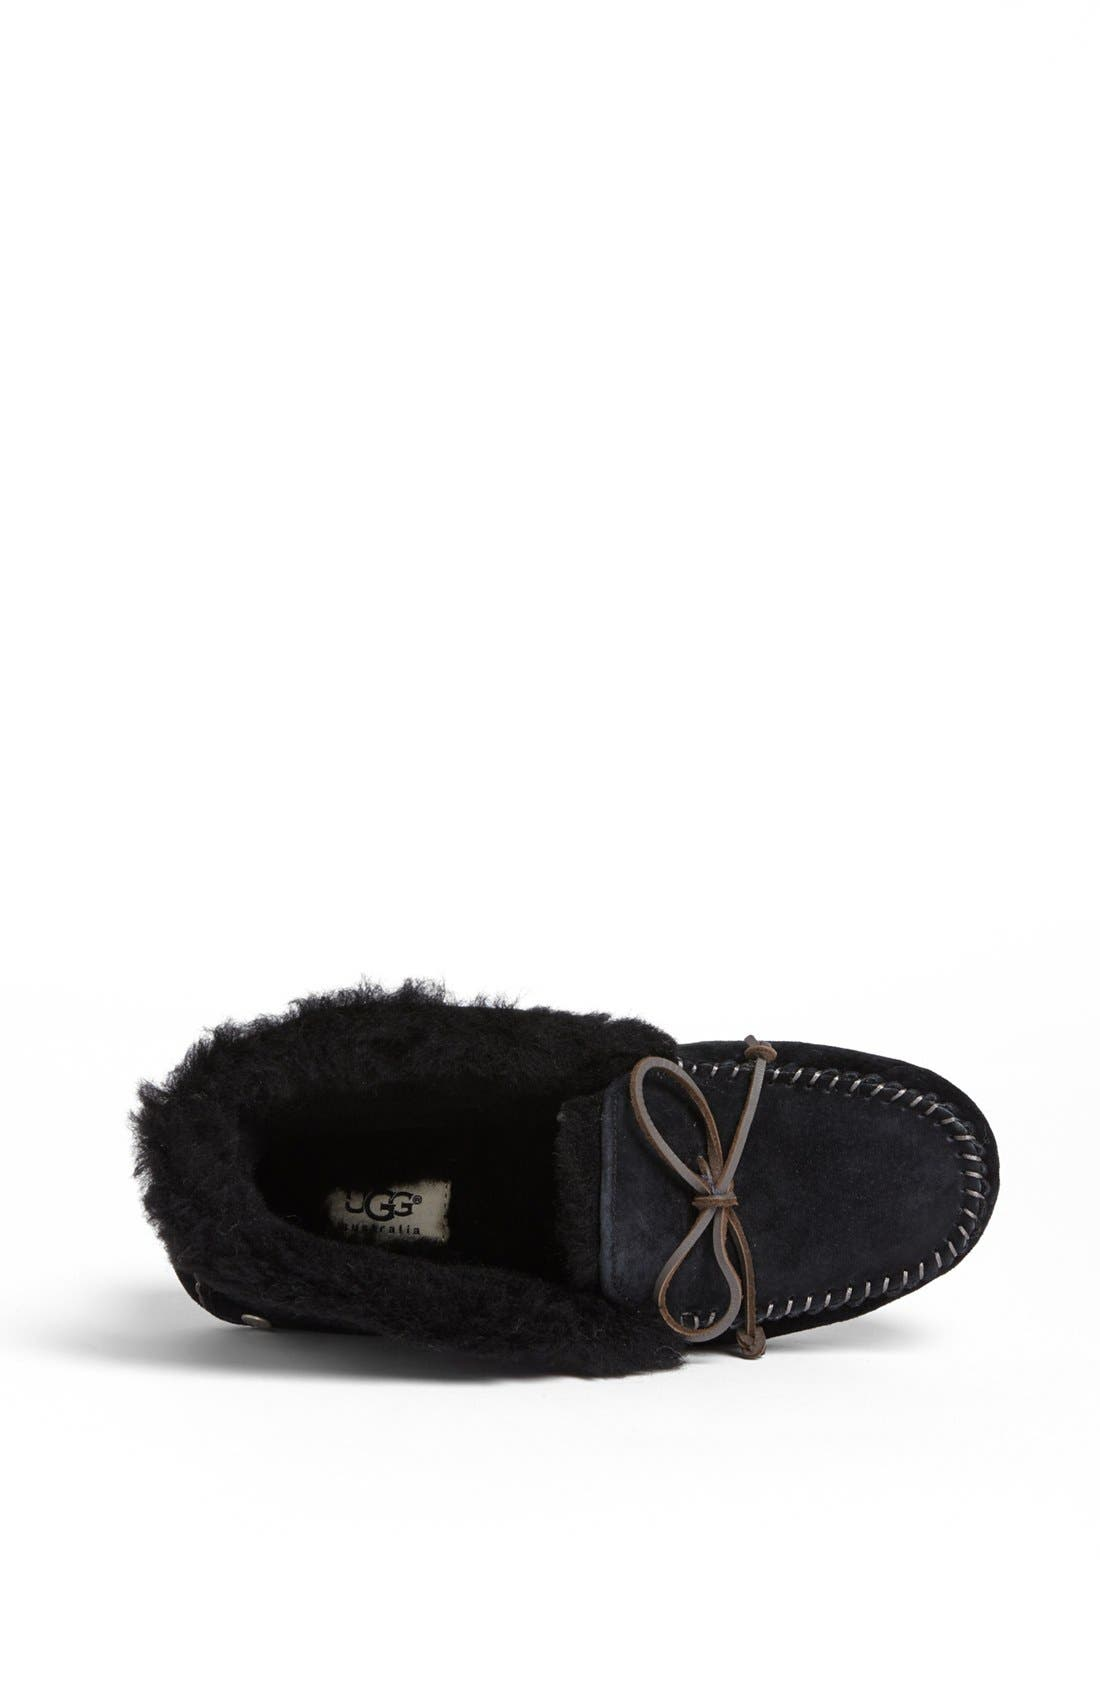 Alternate Image 3  - UGG® UGGpure™ Alena Suede Slipper Bootie (Women)